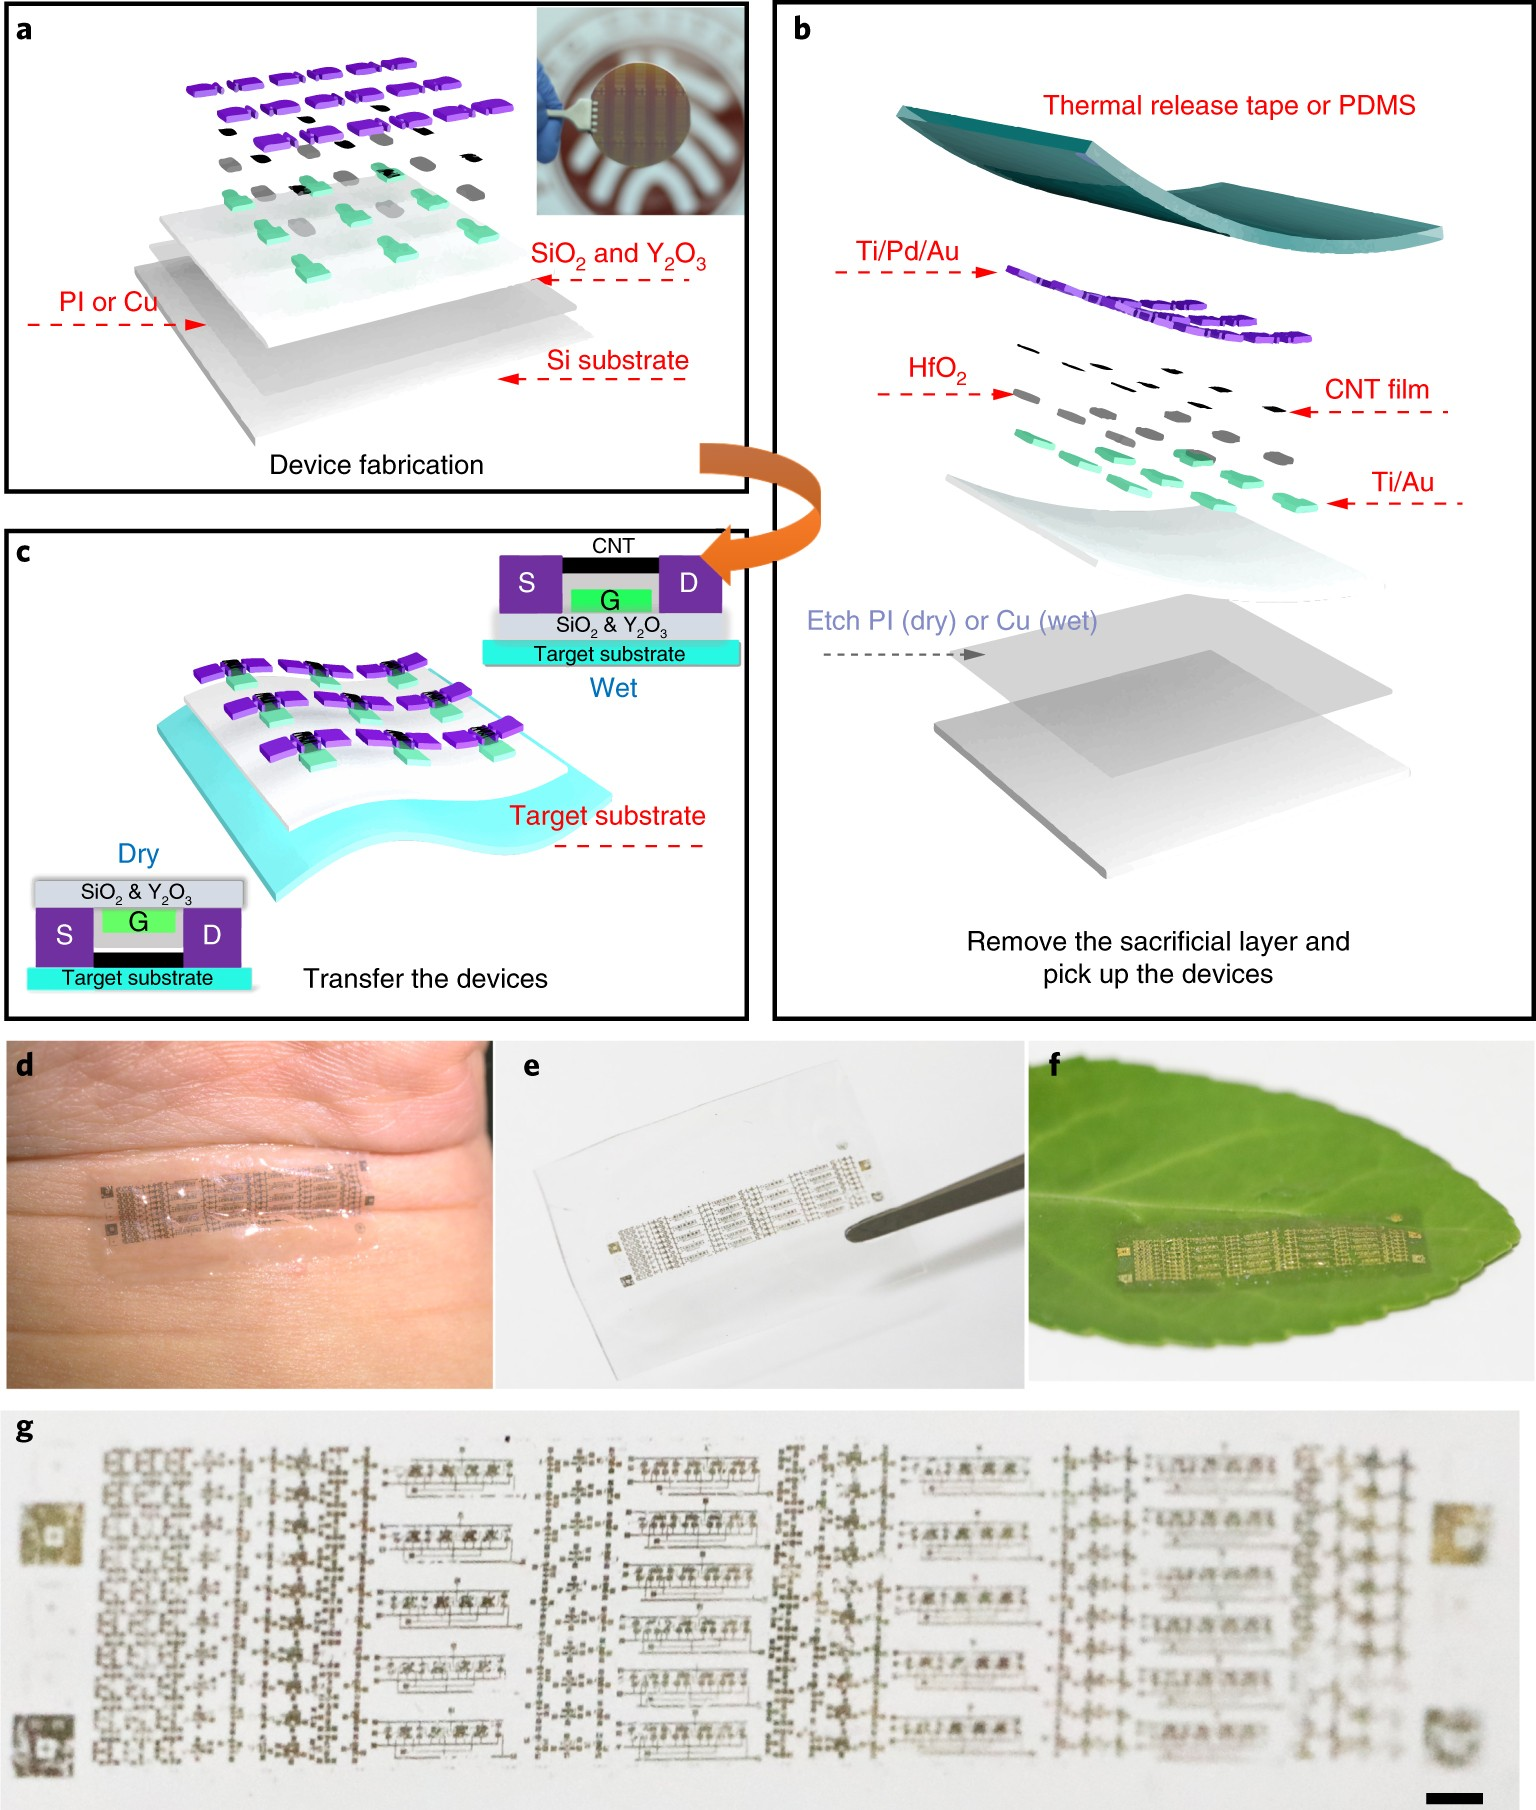 Low Power Carbon Nanotube Based Integrated Circuits That Can Be Figure 11 2 Illustrates A Diode Logic Circuit Which Provide The Transferred To Biological Surfaces Nature Electronics